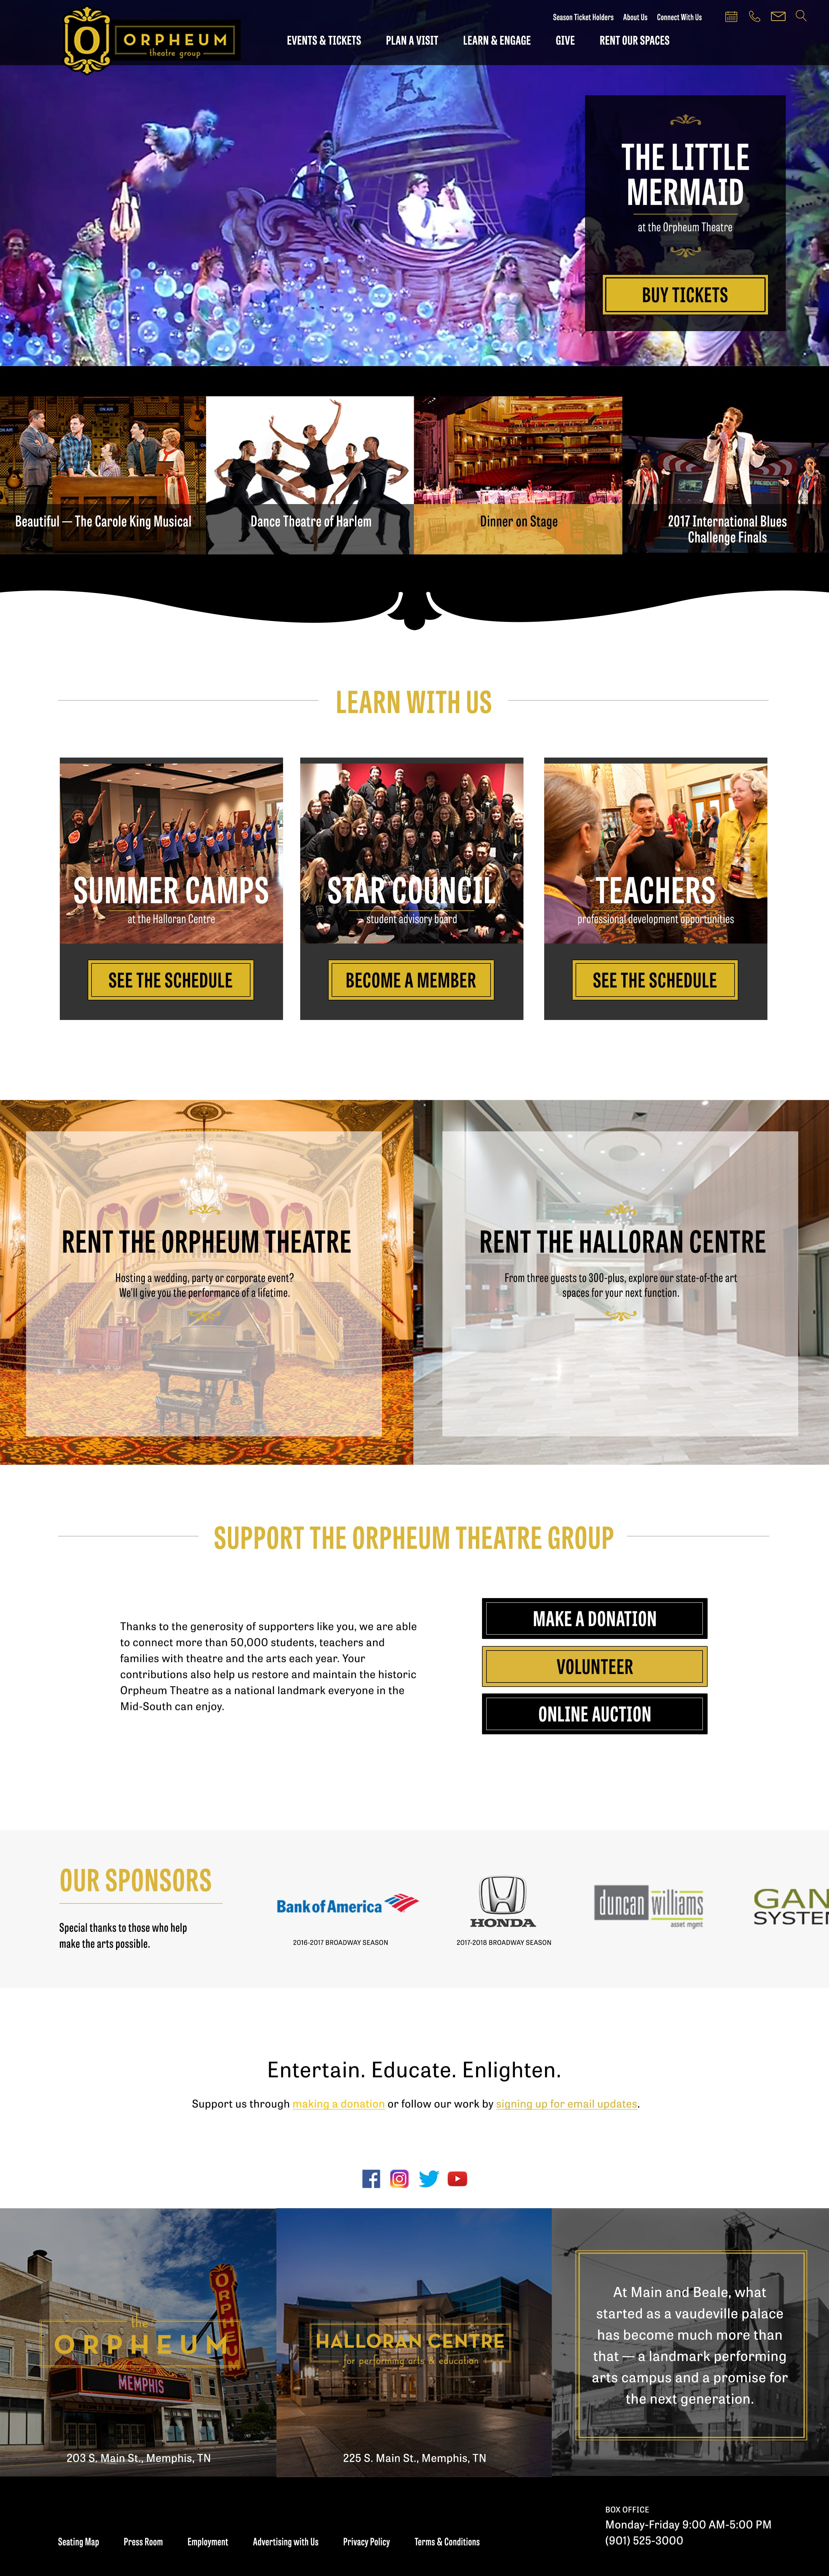 Homepage design for Orpheum Theatre